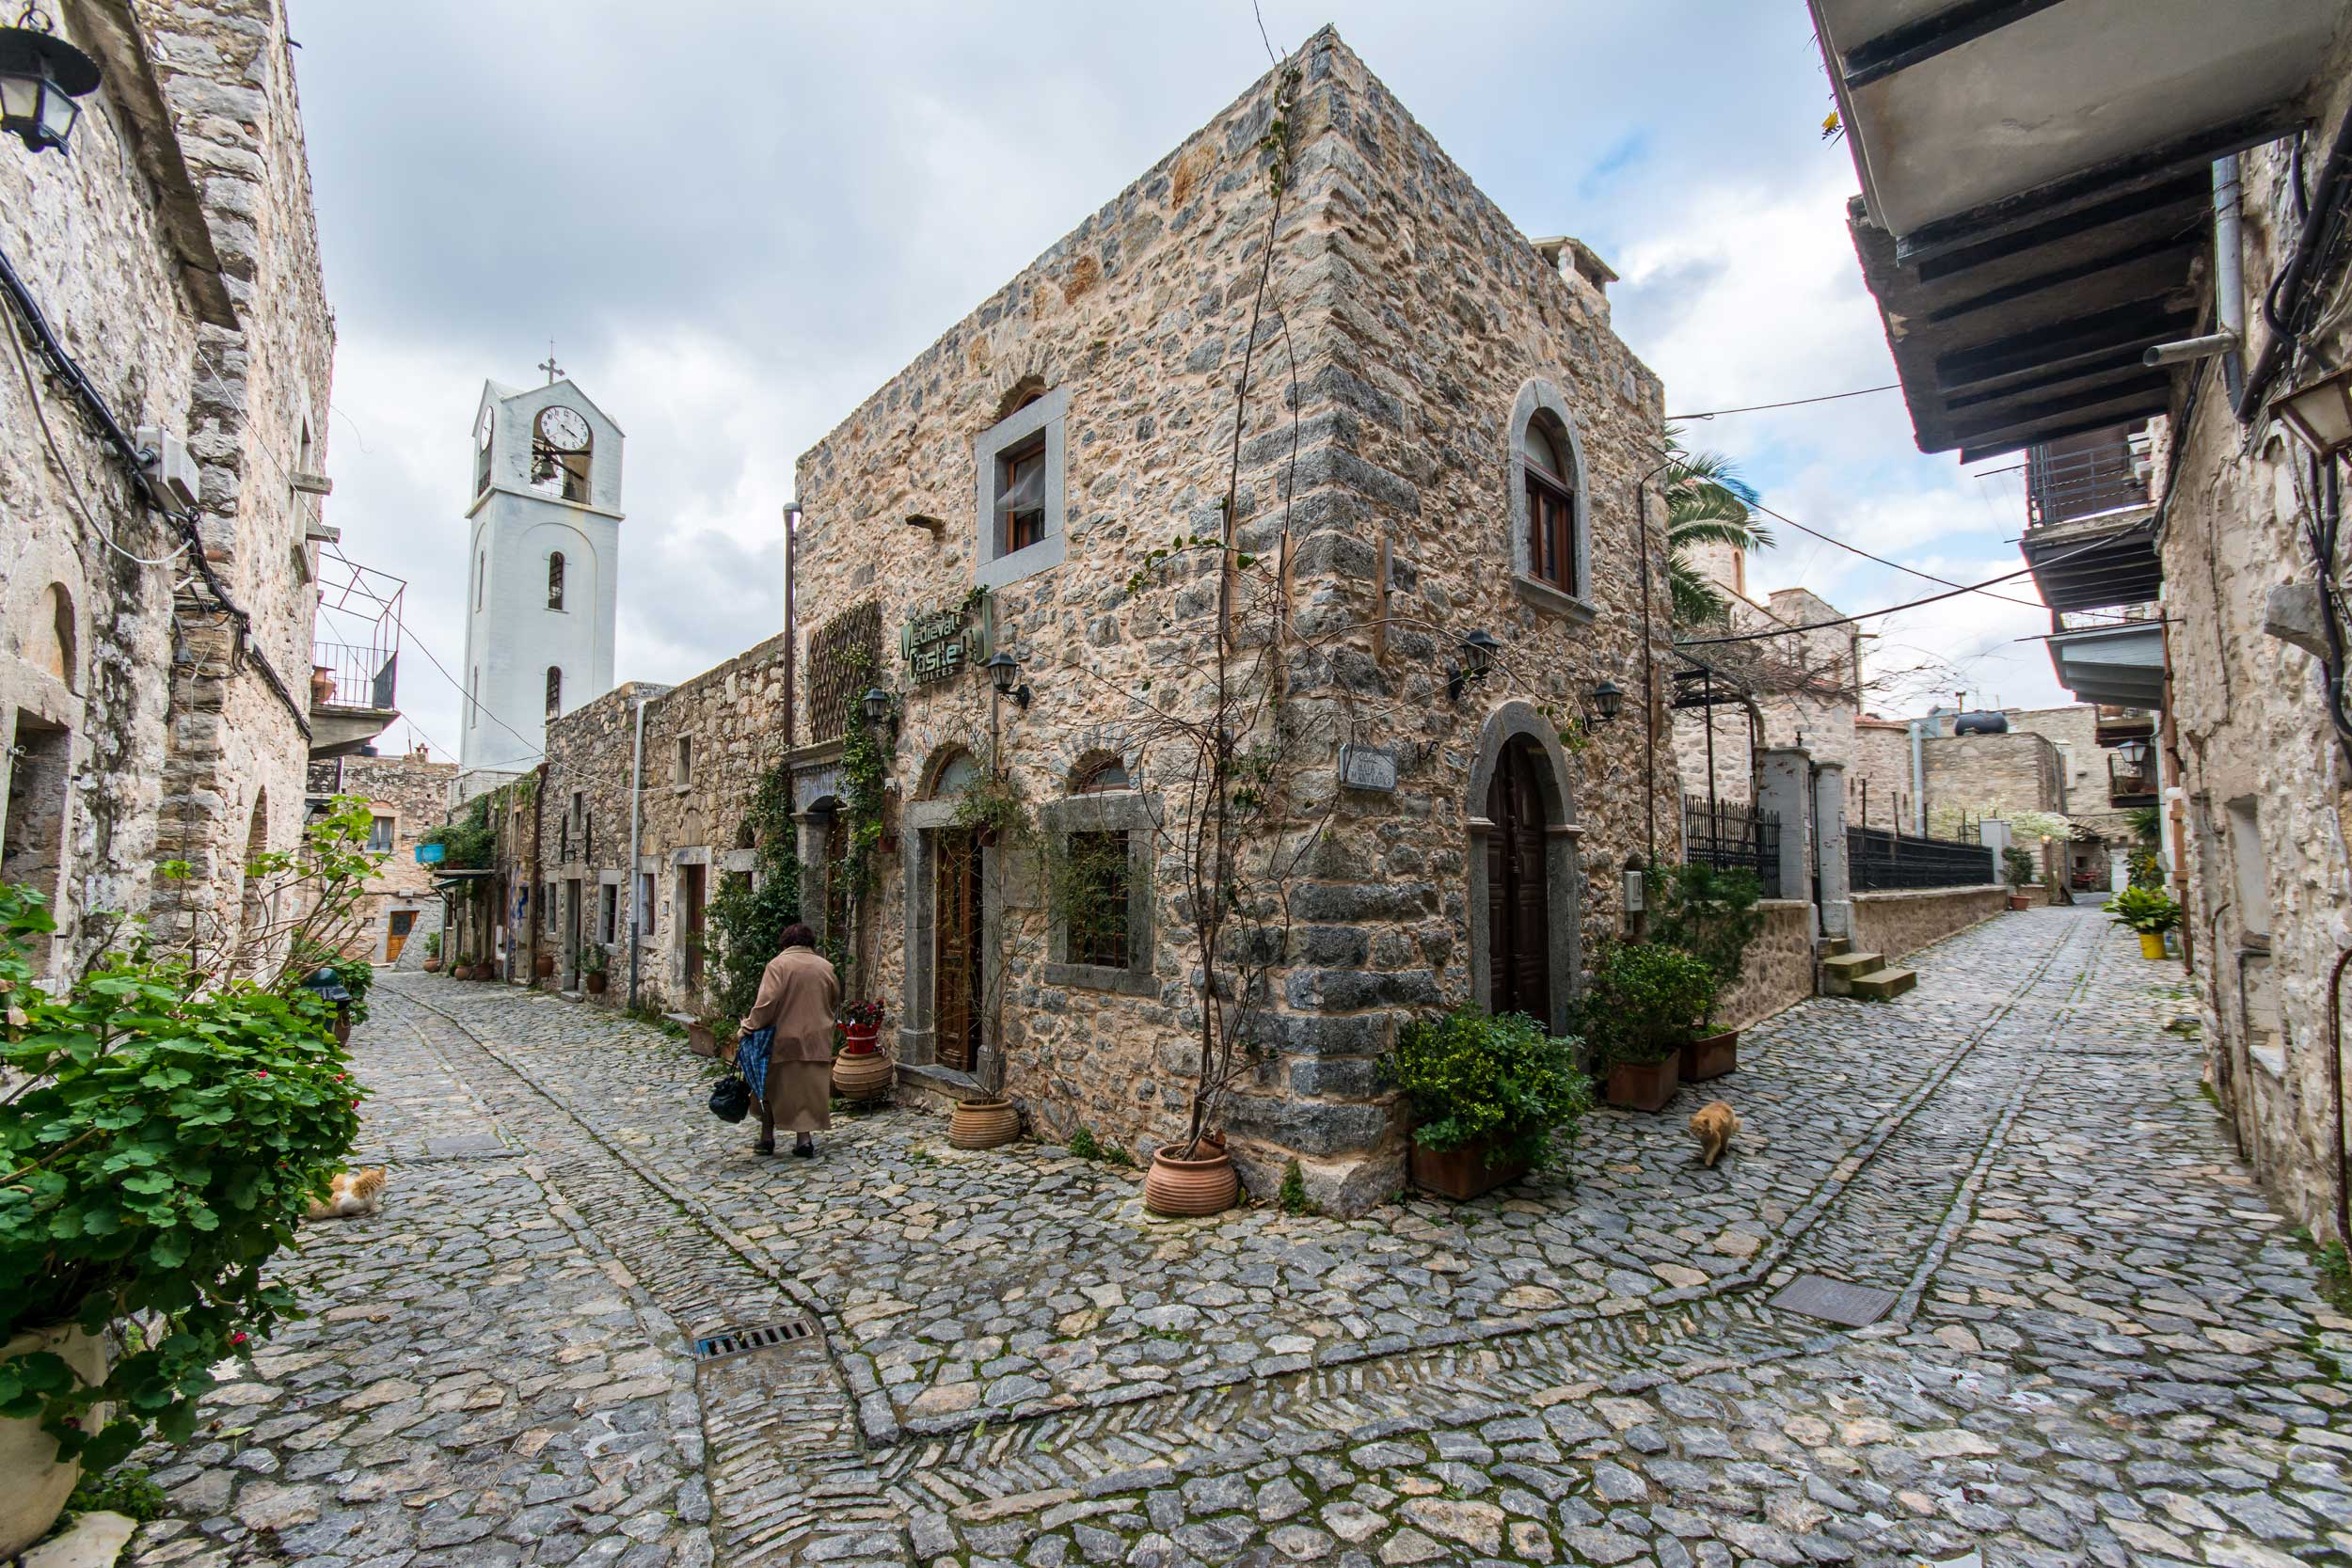 A cobblestoned medieval street corner with a white clocktower in the distance, Greece